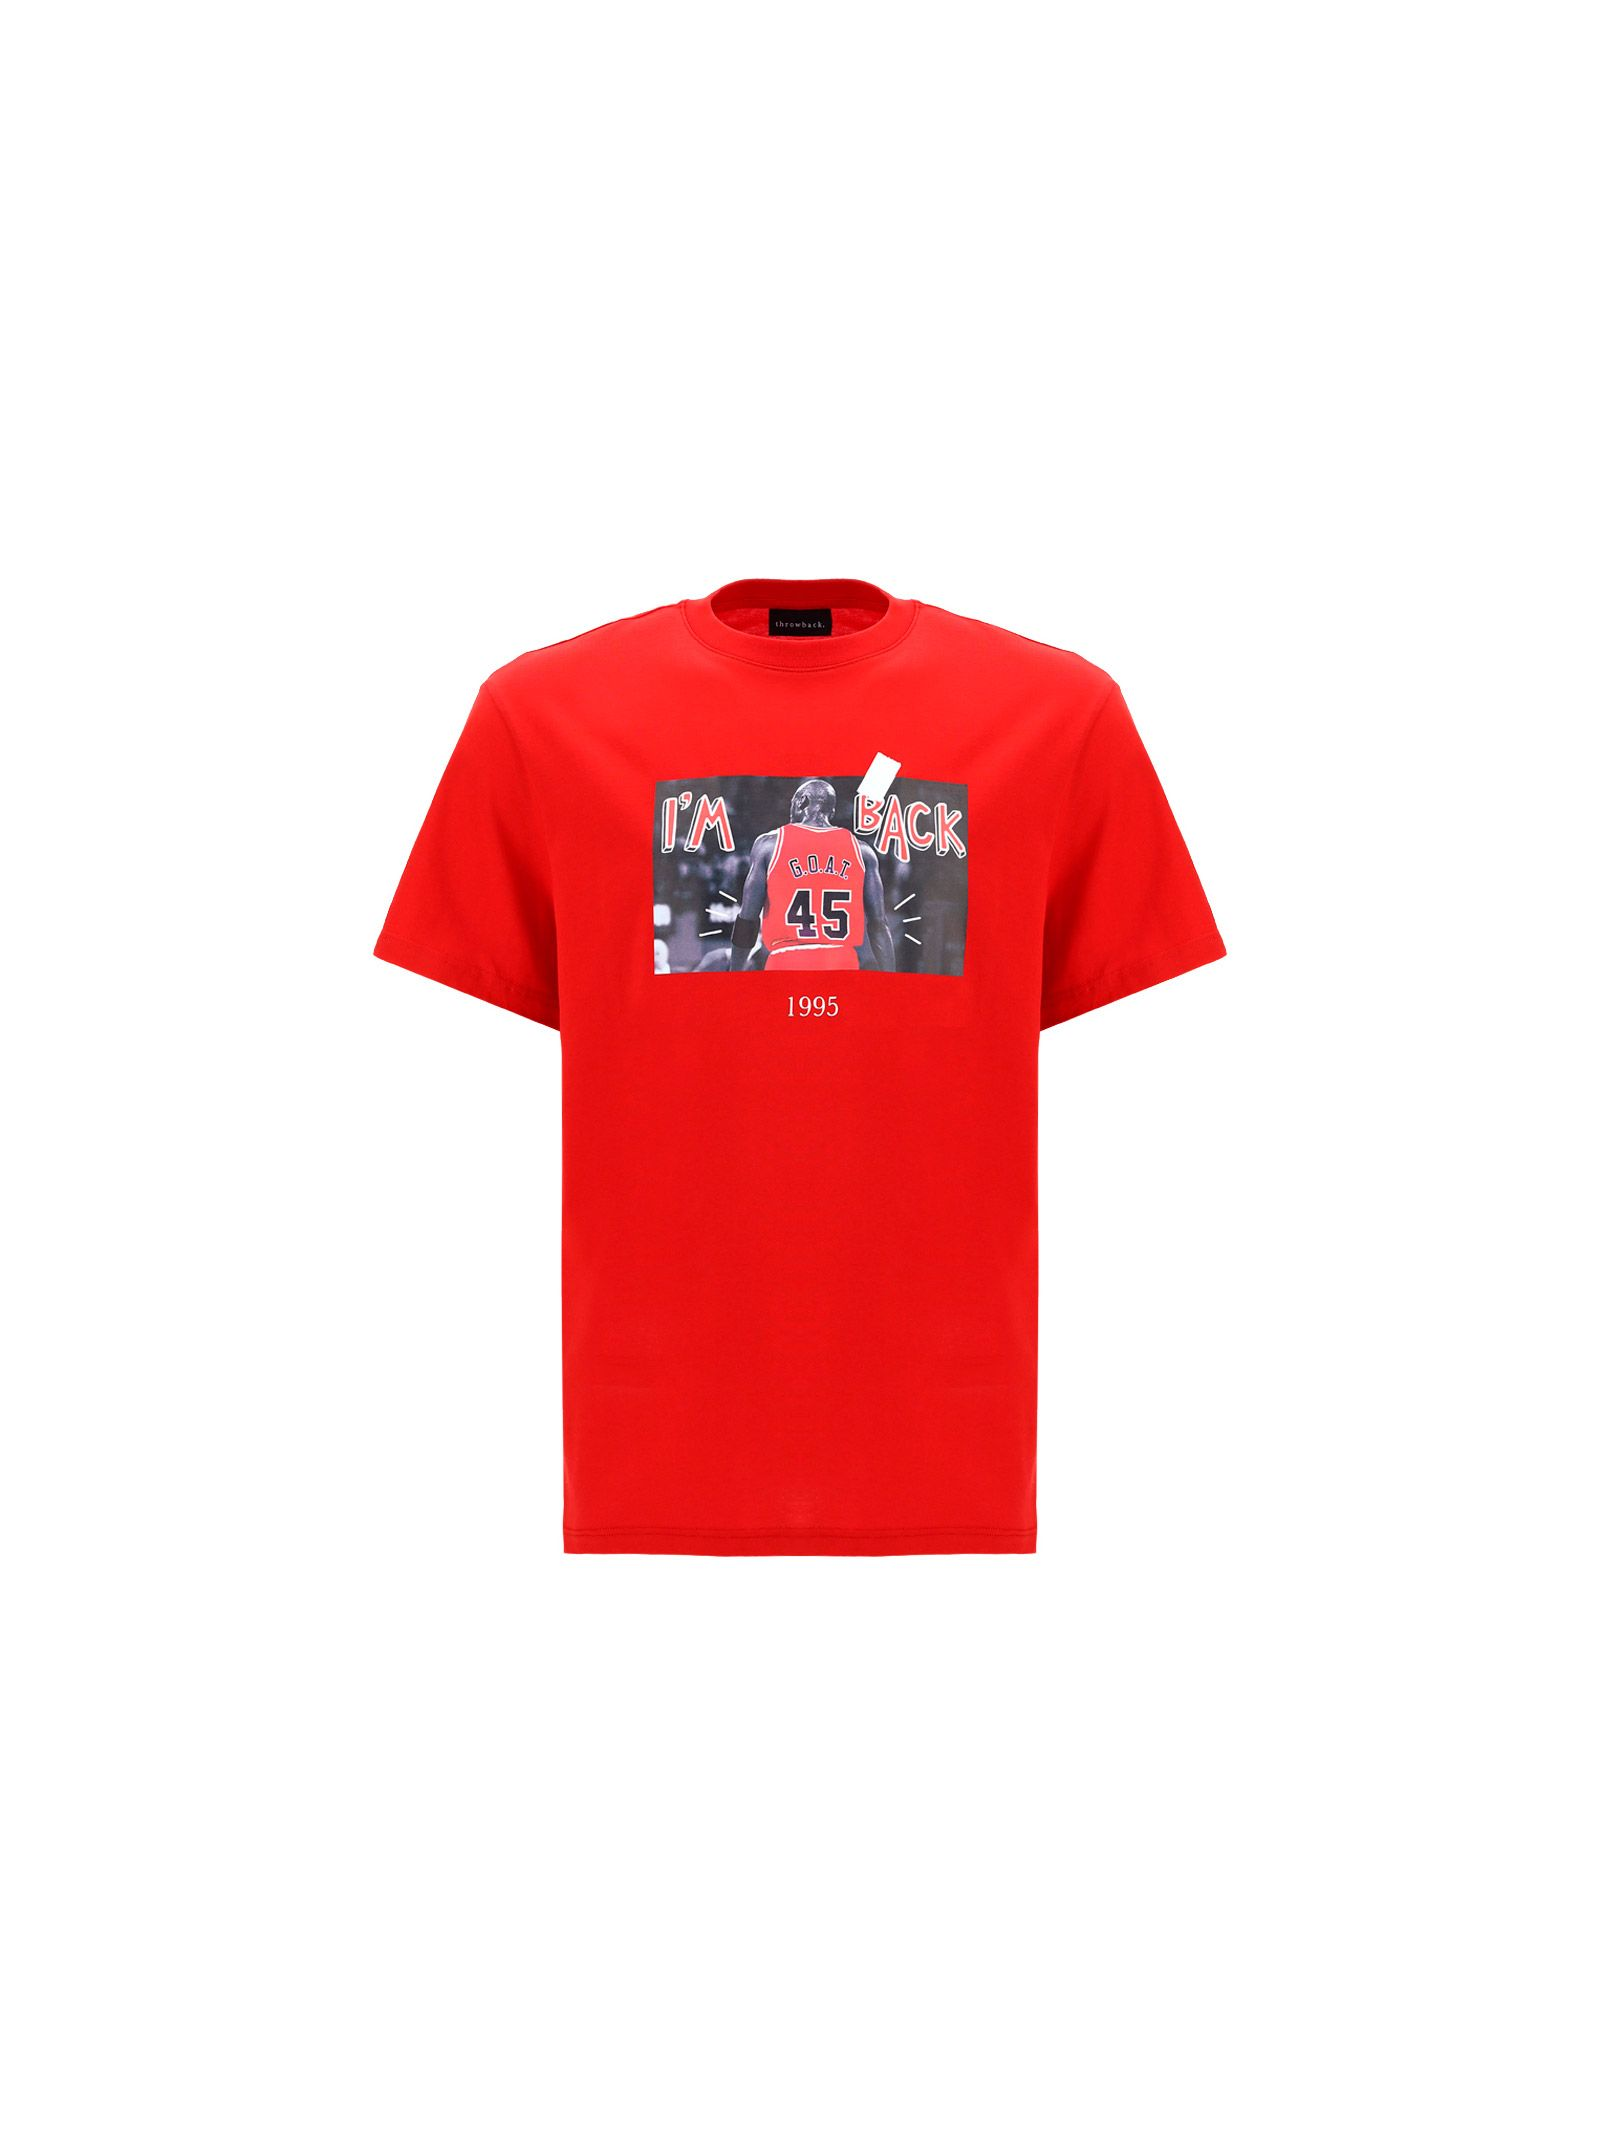 Throwback Cottons THROWBACK. MEN'S TBTGOATRED RED OTHER MATERIALS T-SHIRT